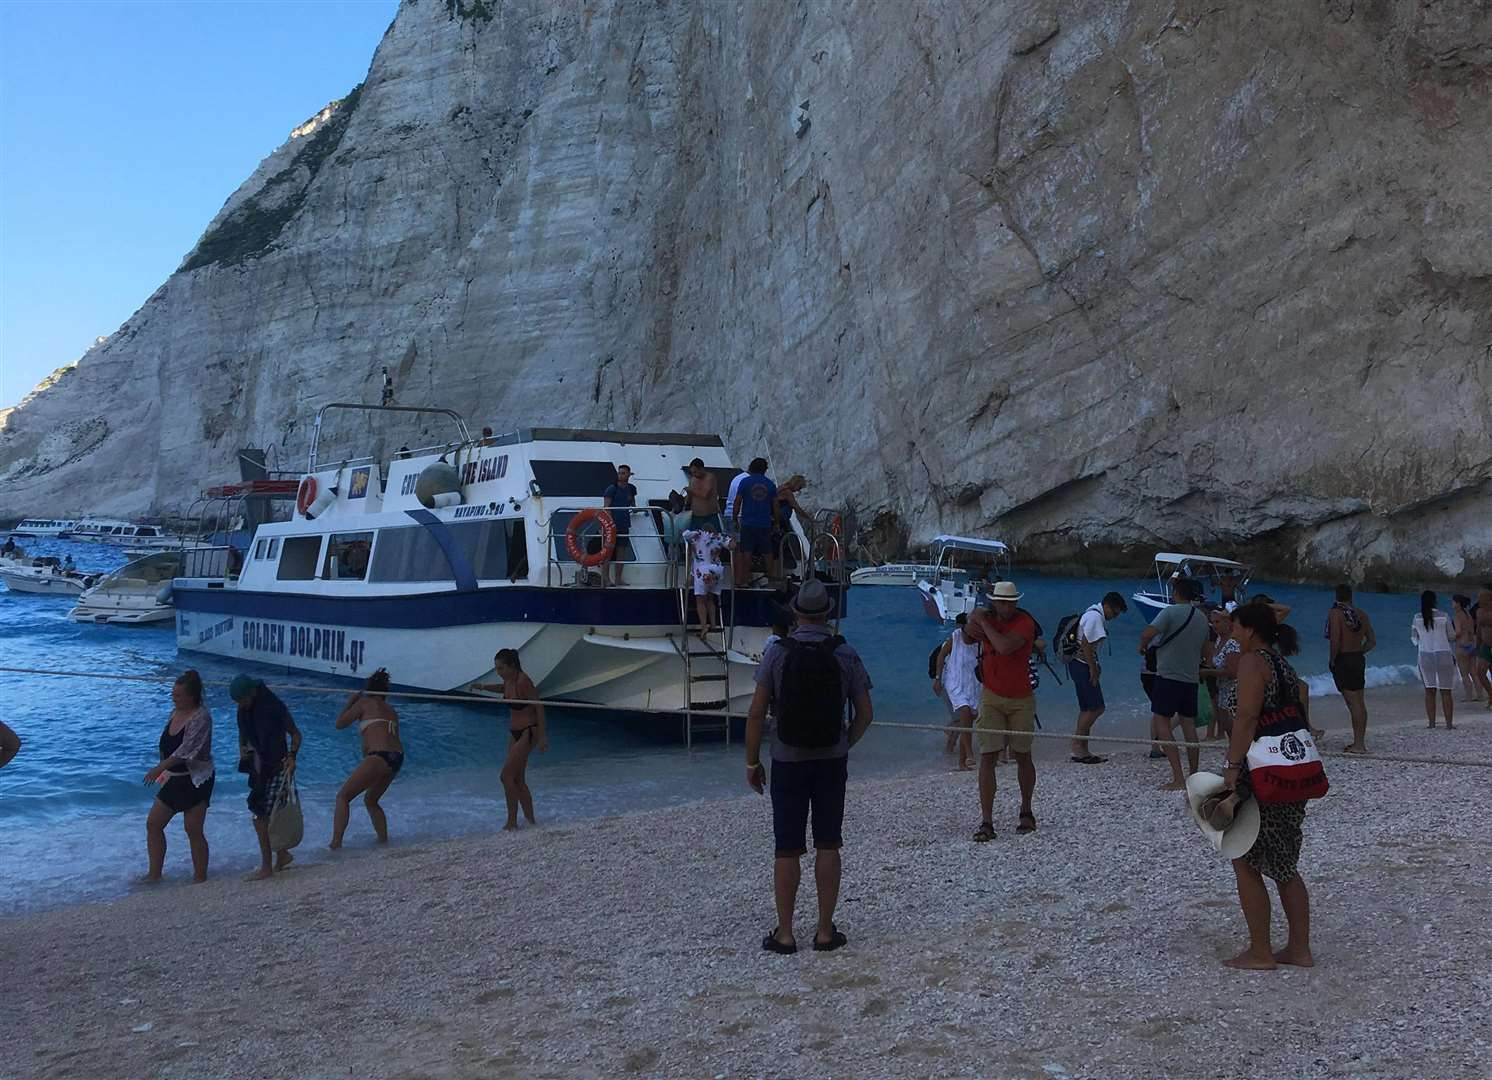 A boat transporting holidaymakers to the beach just minutes before the landslide